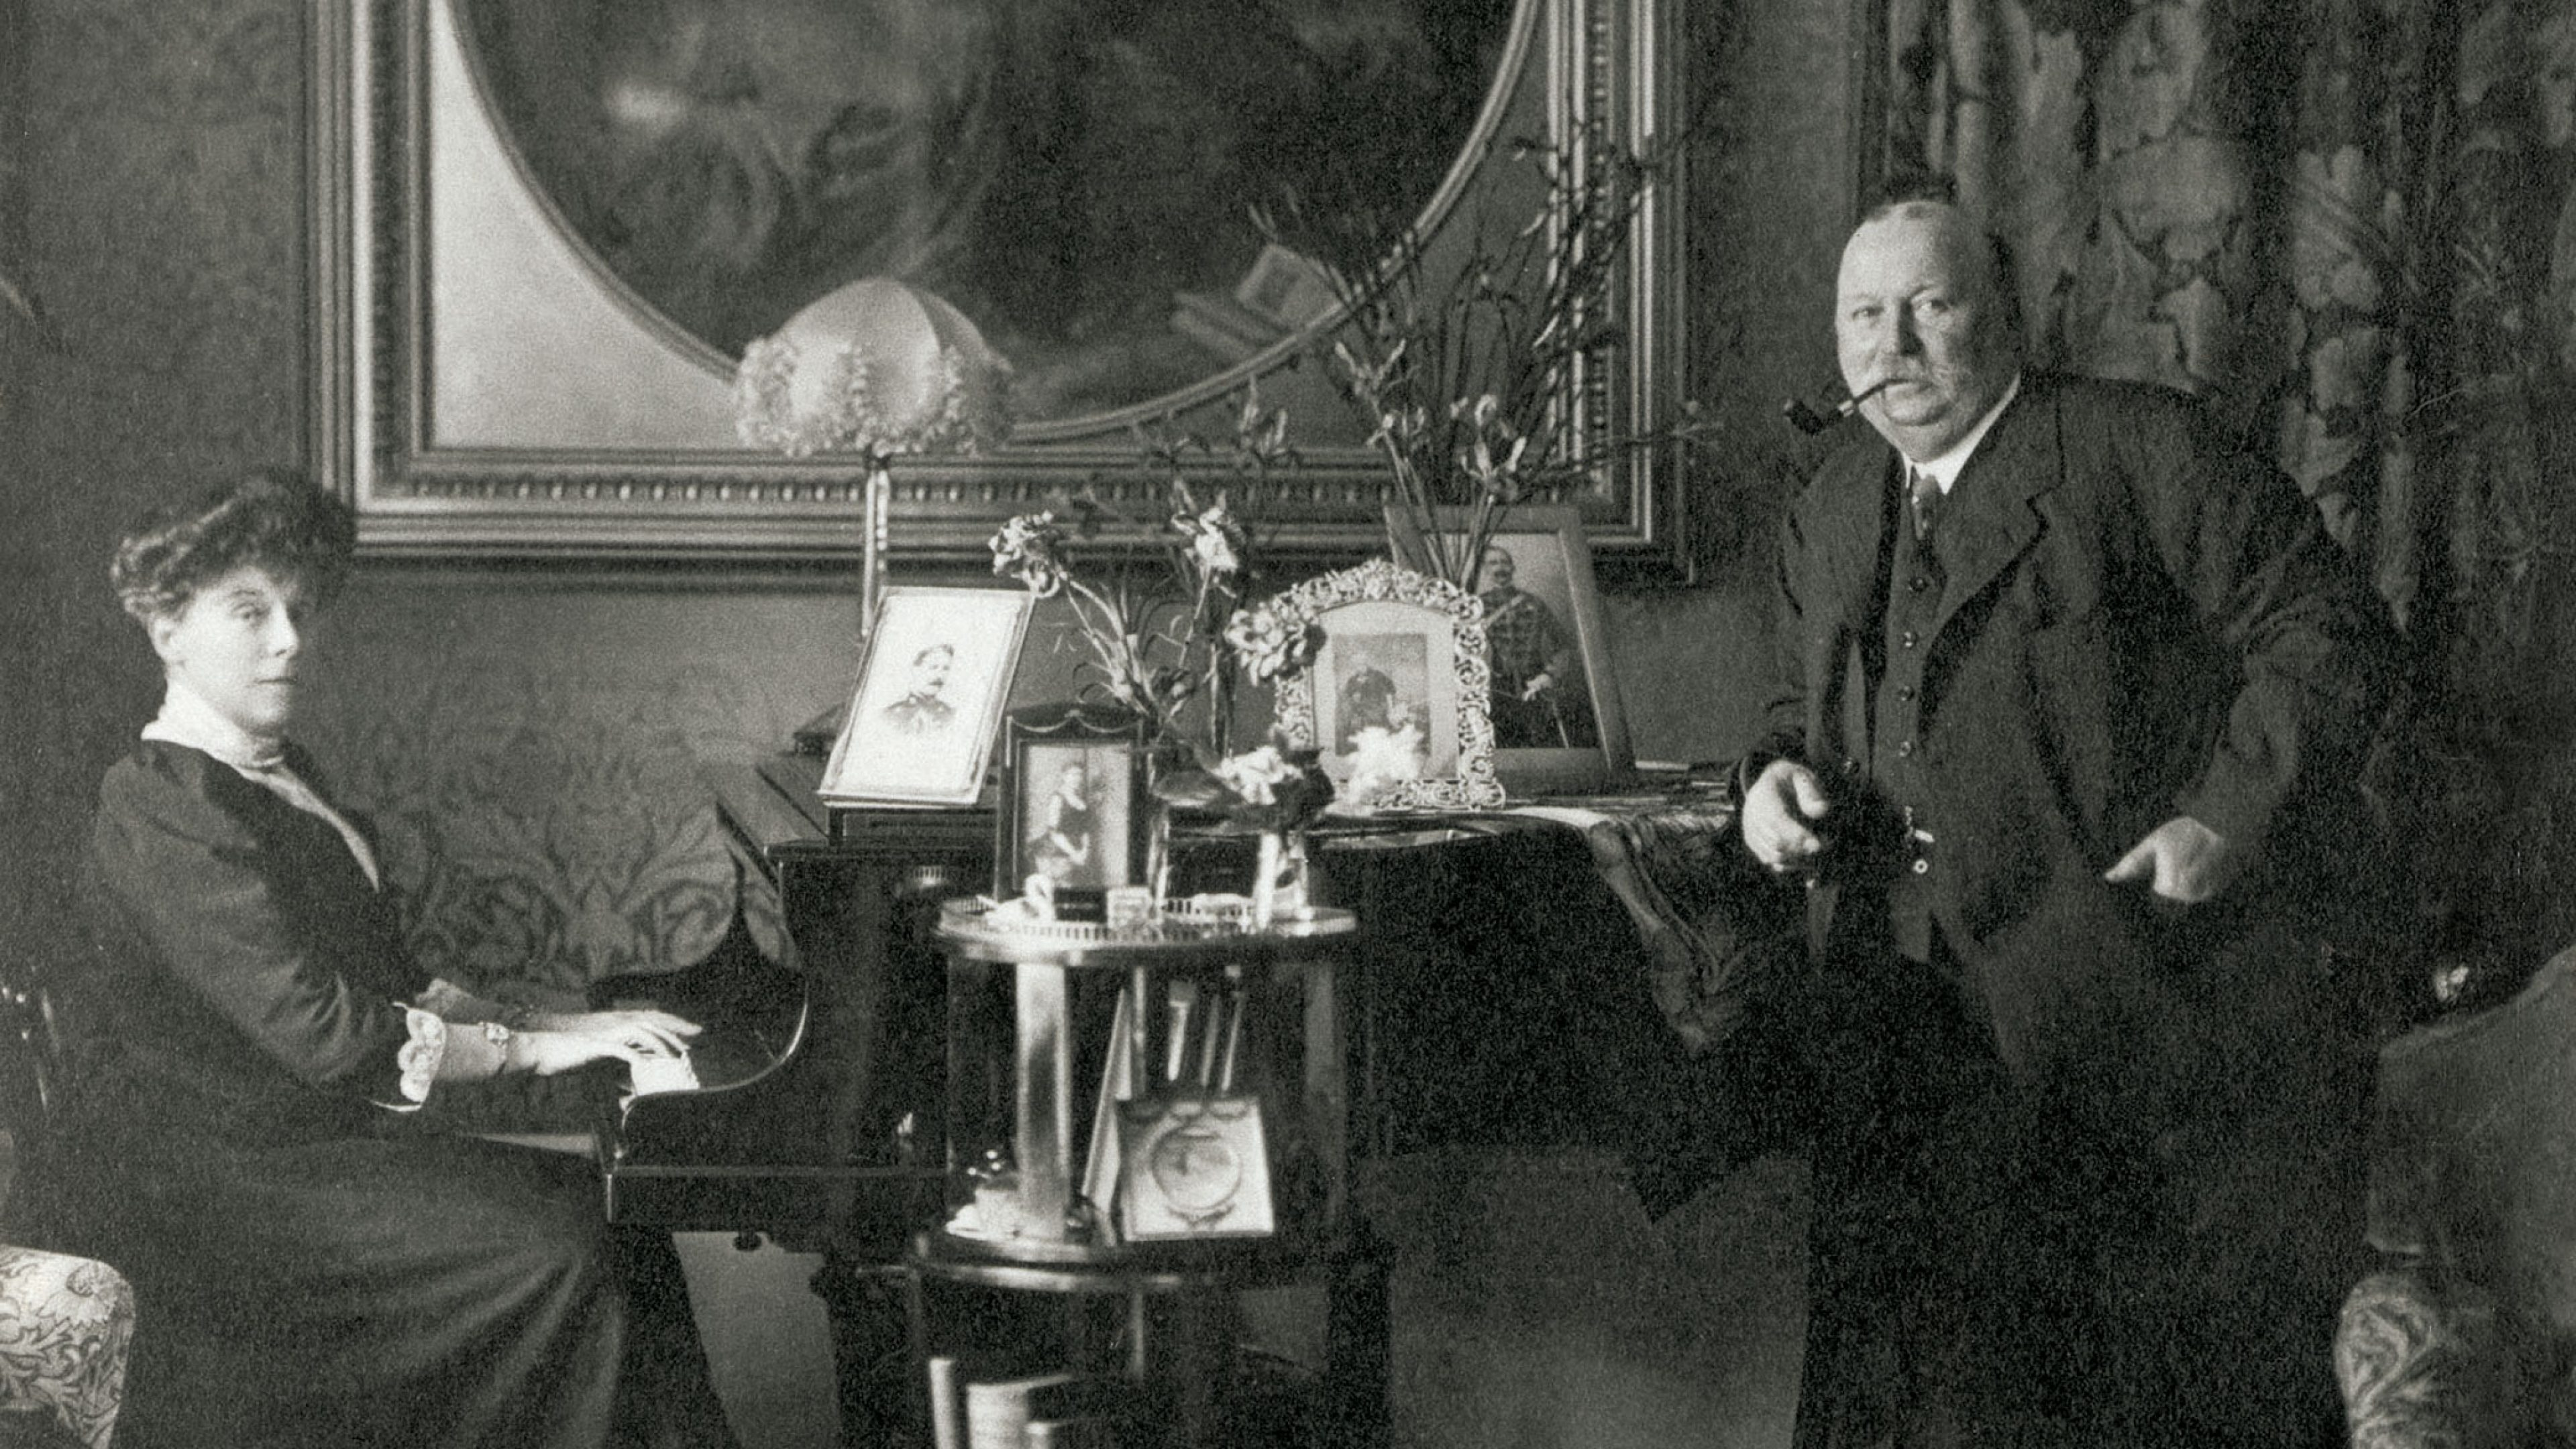 William Knox D'Arcy, the founder of BP, with his wife in their Edwardian English home. D'Arcy entered the oil industry in 1901 by obtaining an...